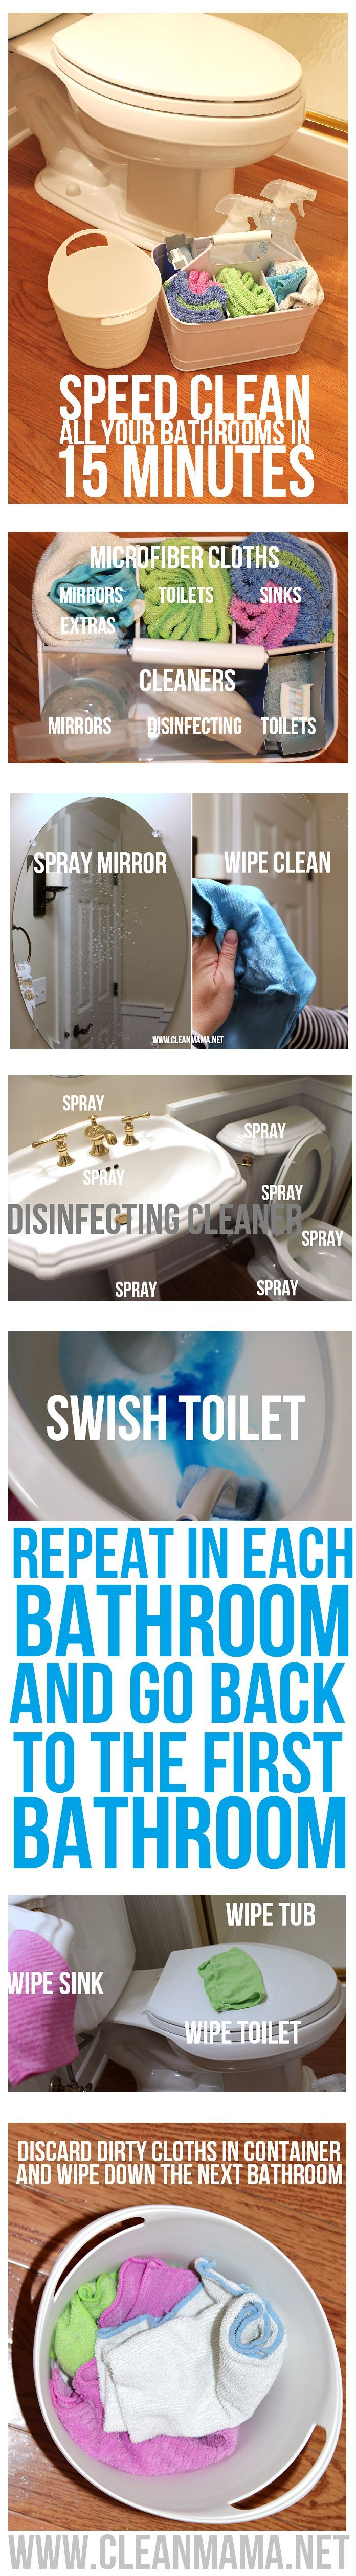 Efficient & Effective Bathroom Cleaning designate for a specific day of the week an do weekly!!!